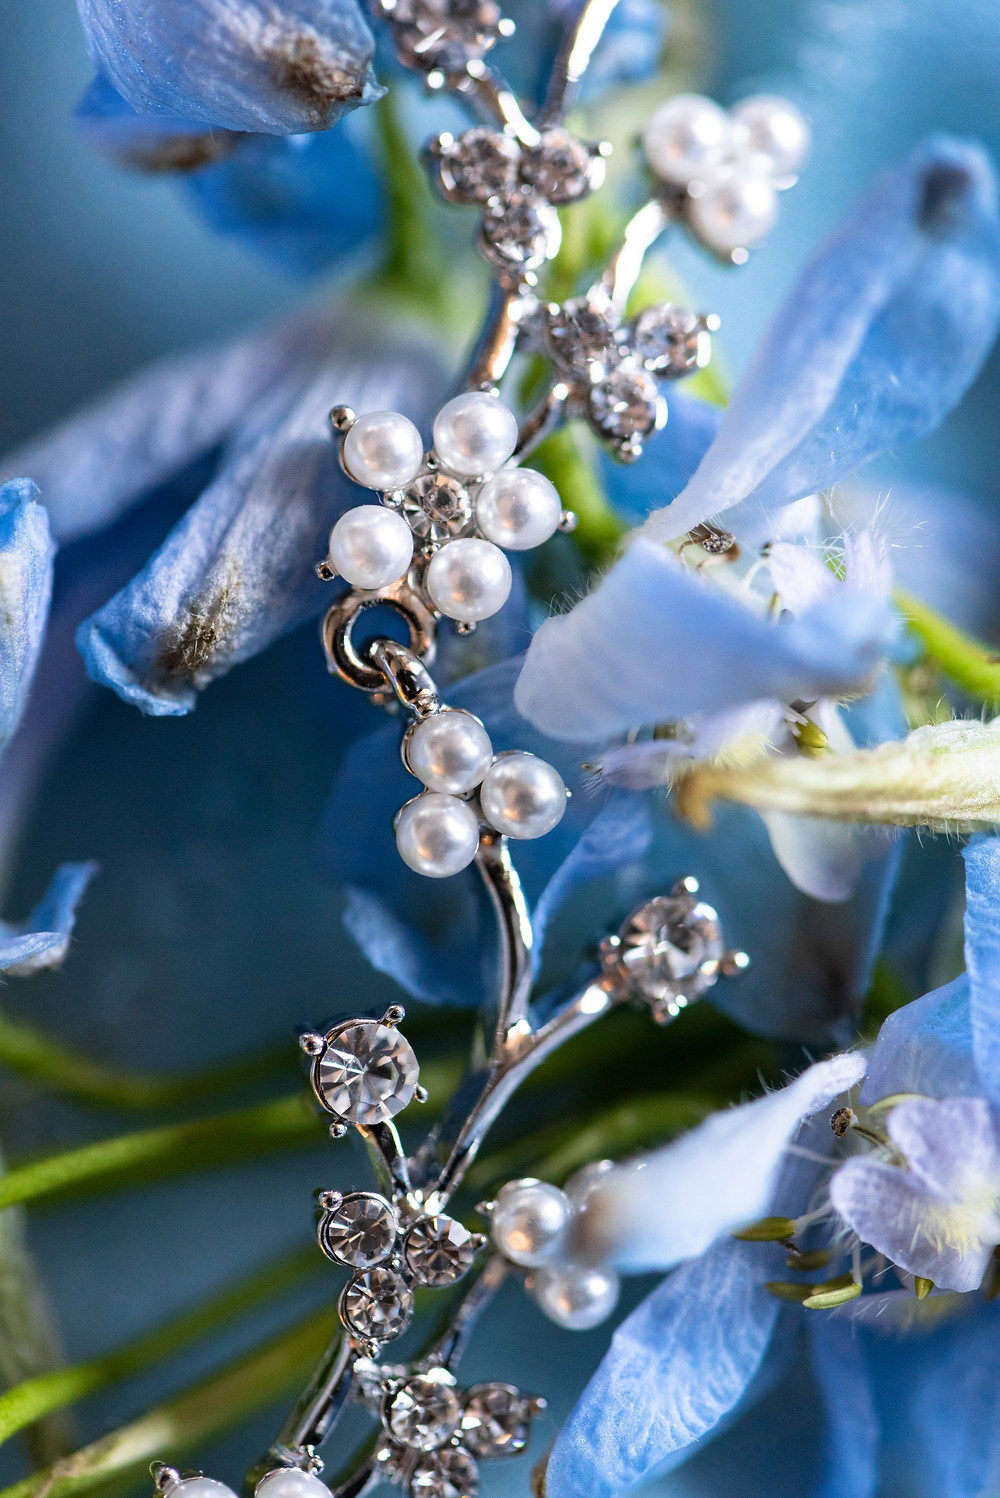 Bridal pearl necklace laid on blue flowers